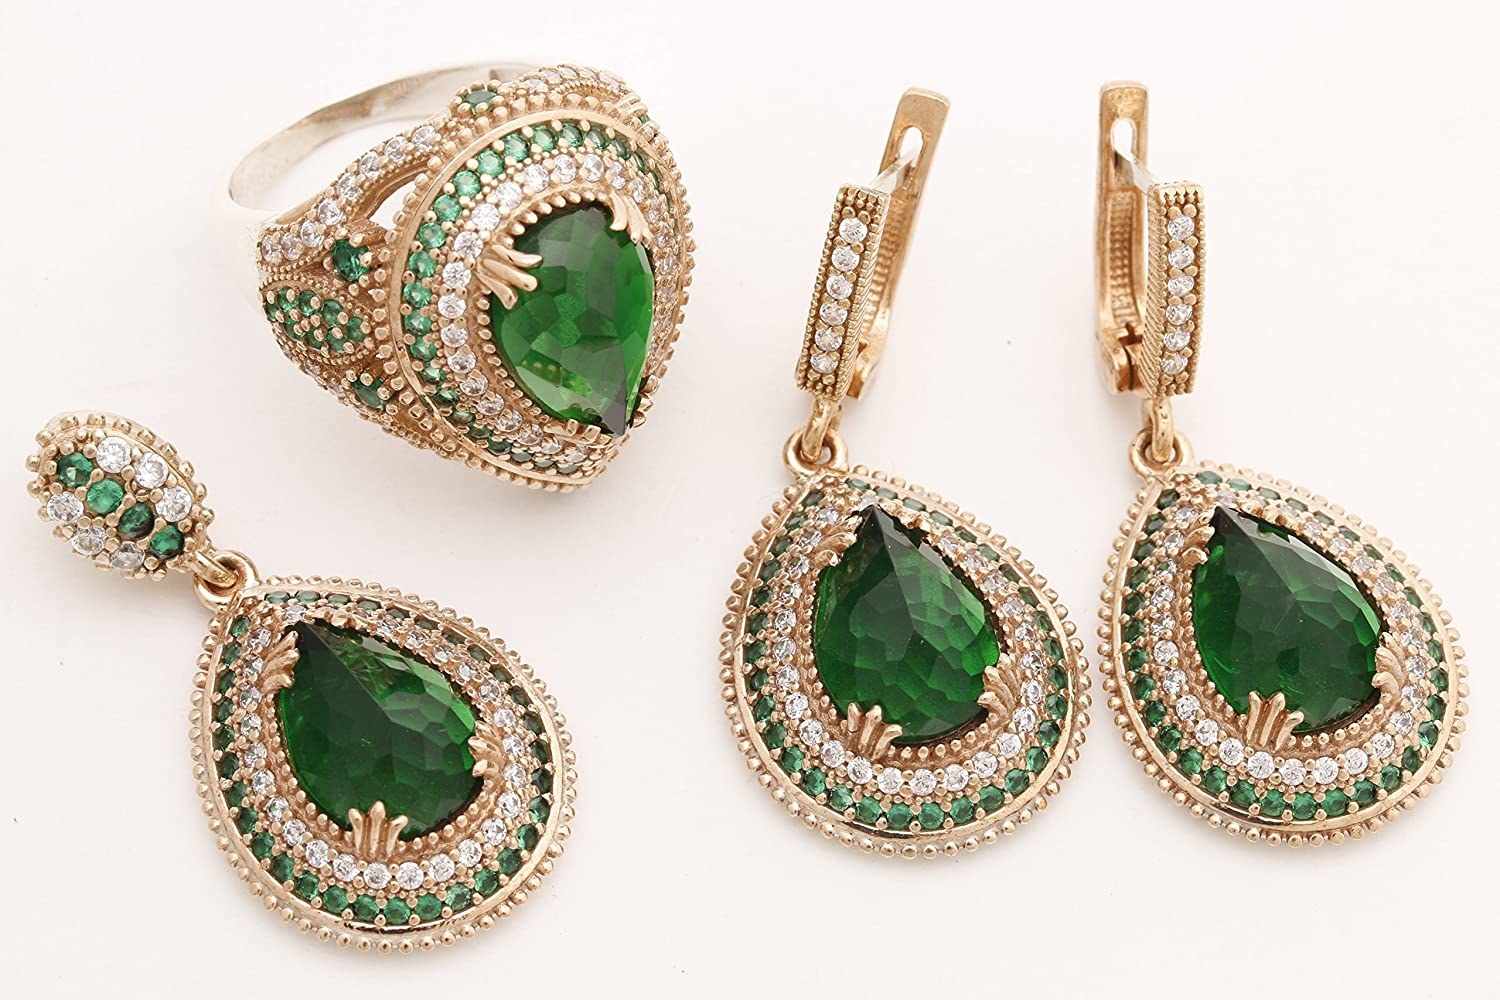 Ottoman Collection Empire Turkish Handmade Jewelry Drop Shape Pear Cut Emerald and Round Cut Topaz 925 Sterling Silver Jewelry Set Earrings,Pendant and Ring Size All